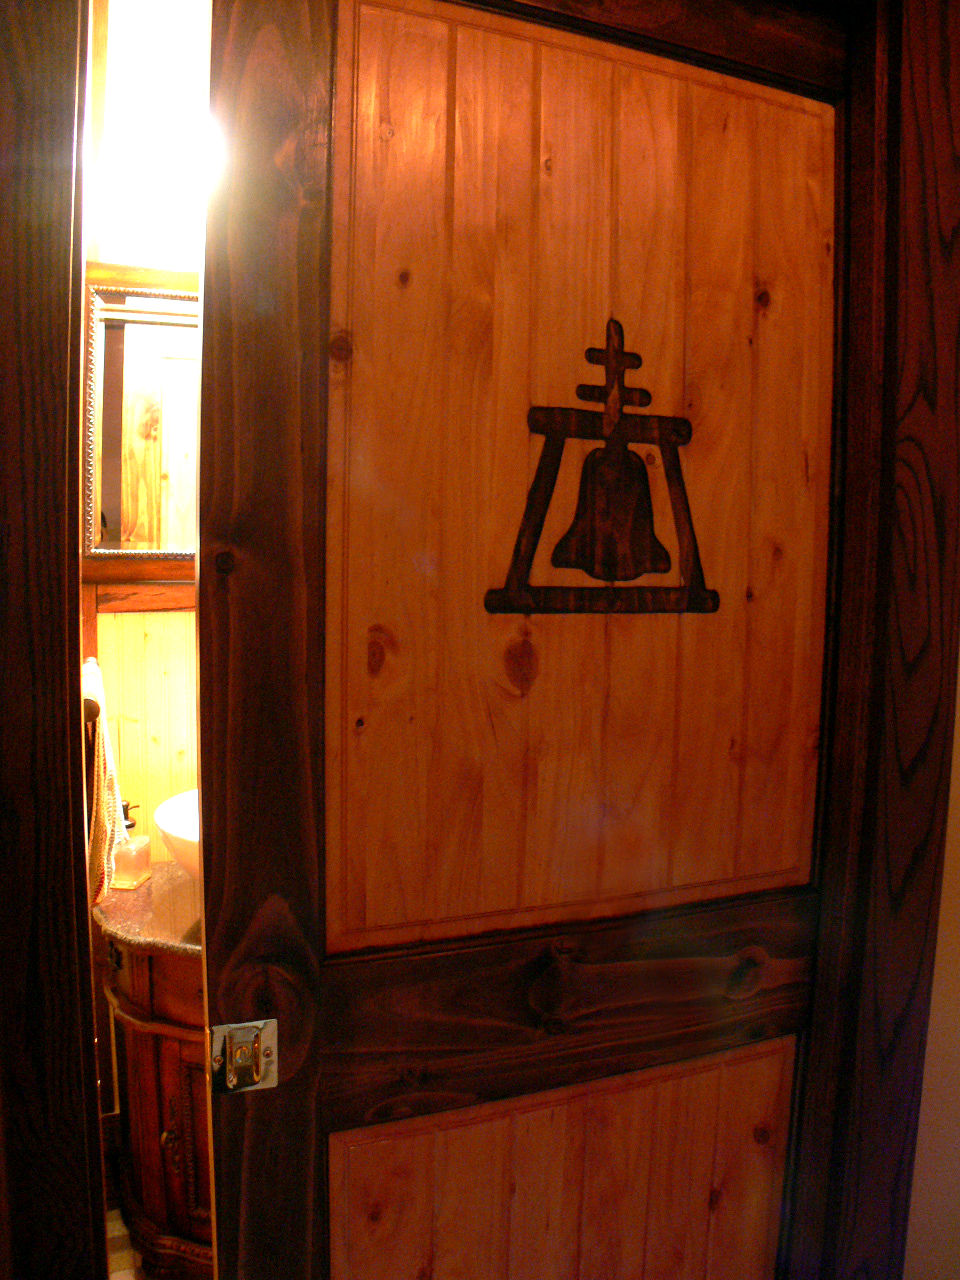 Riverside Rain Cross Emblem Etched Into Wooden Pocket Door To Half Bath In  Laundry Room. There Is Enough Space In This Room To Pop Out Part Of This  Wall To ...